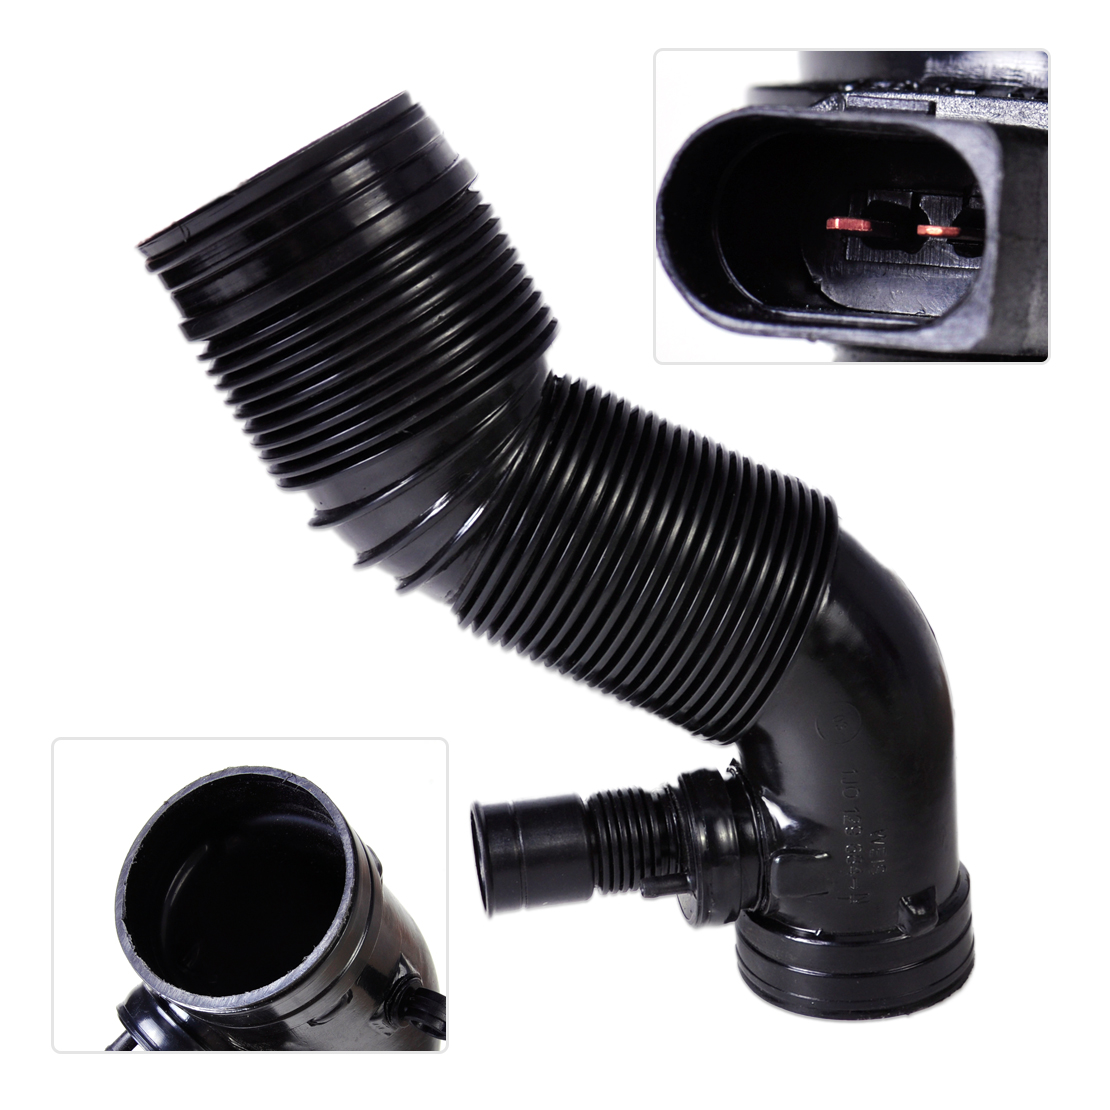 New Air Intake Hose Pipe 1J0 129 684 NT 1J0129684CG Fit for VW Golf MK4 Bora 1998 1999 2000 2001 2002 2003 2004 2005 For Audi A3